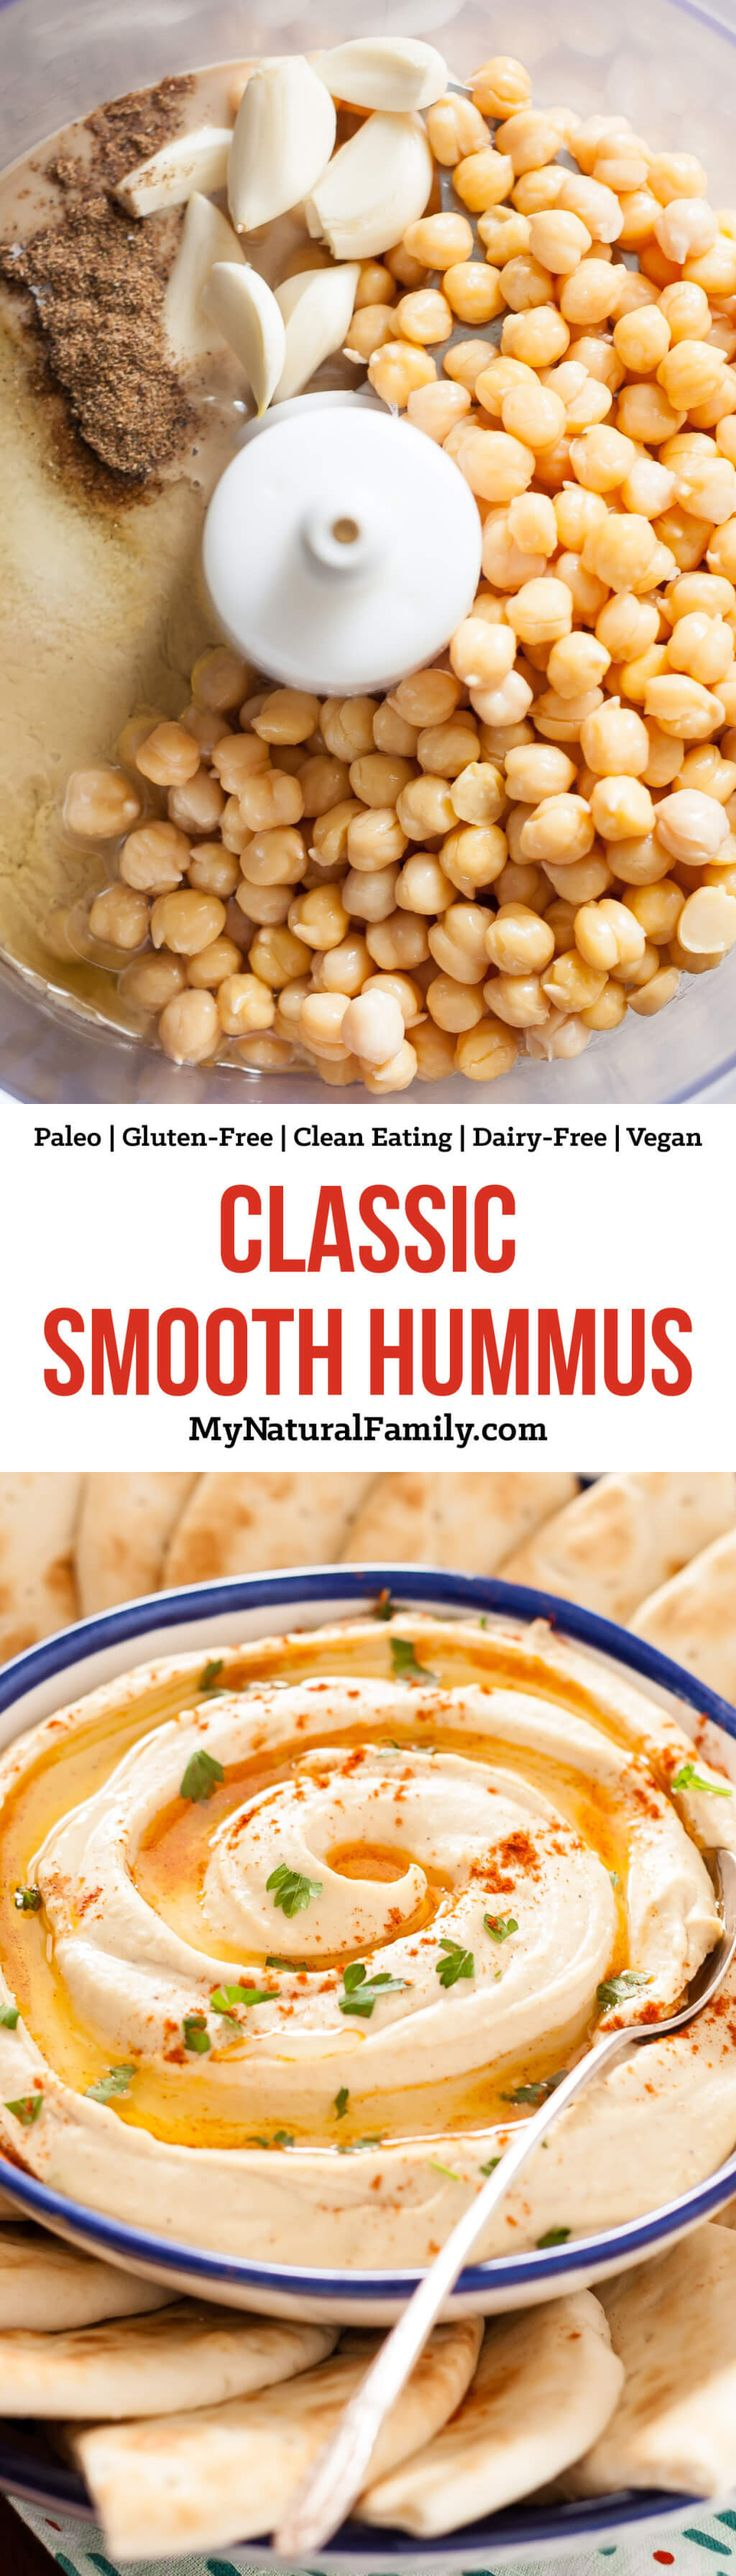 Classic Smooth Hummus Recipe {Clean Eating, Gluten-Free, Dairy-Free, Vegan}